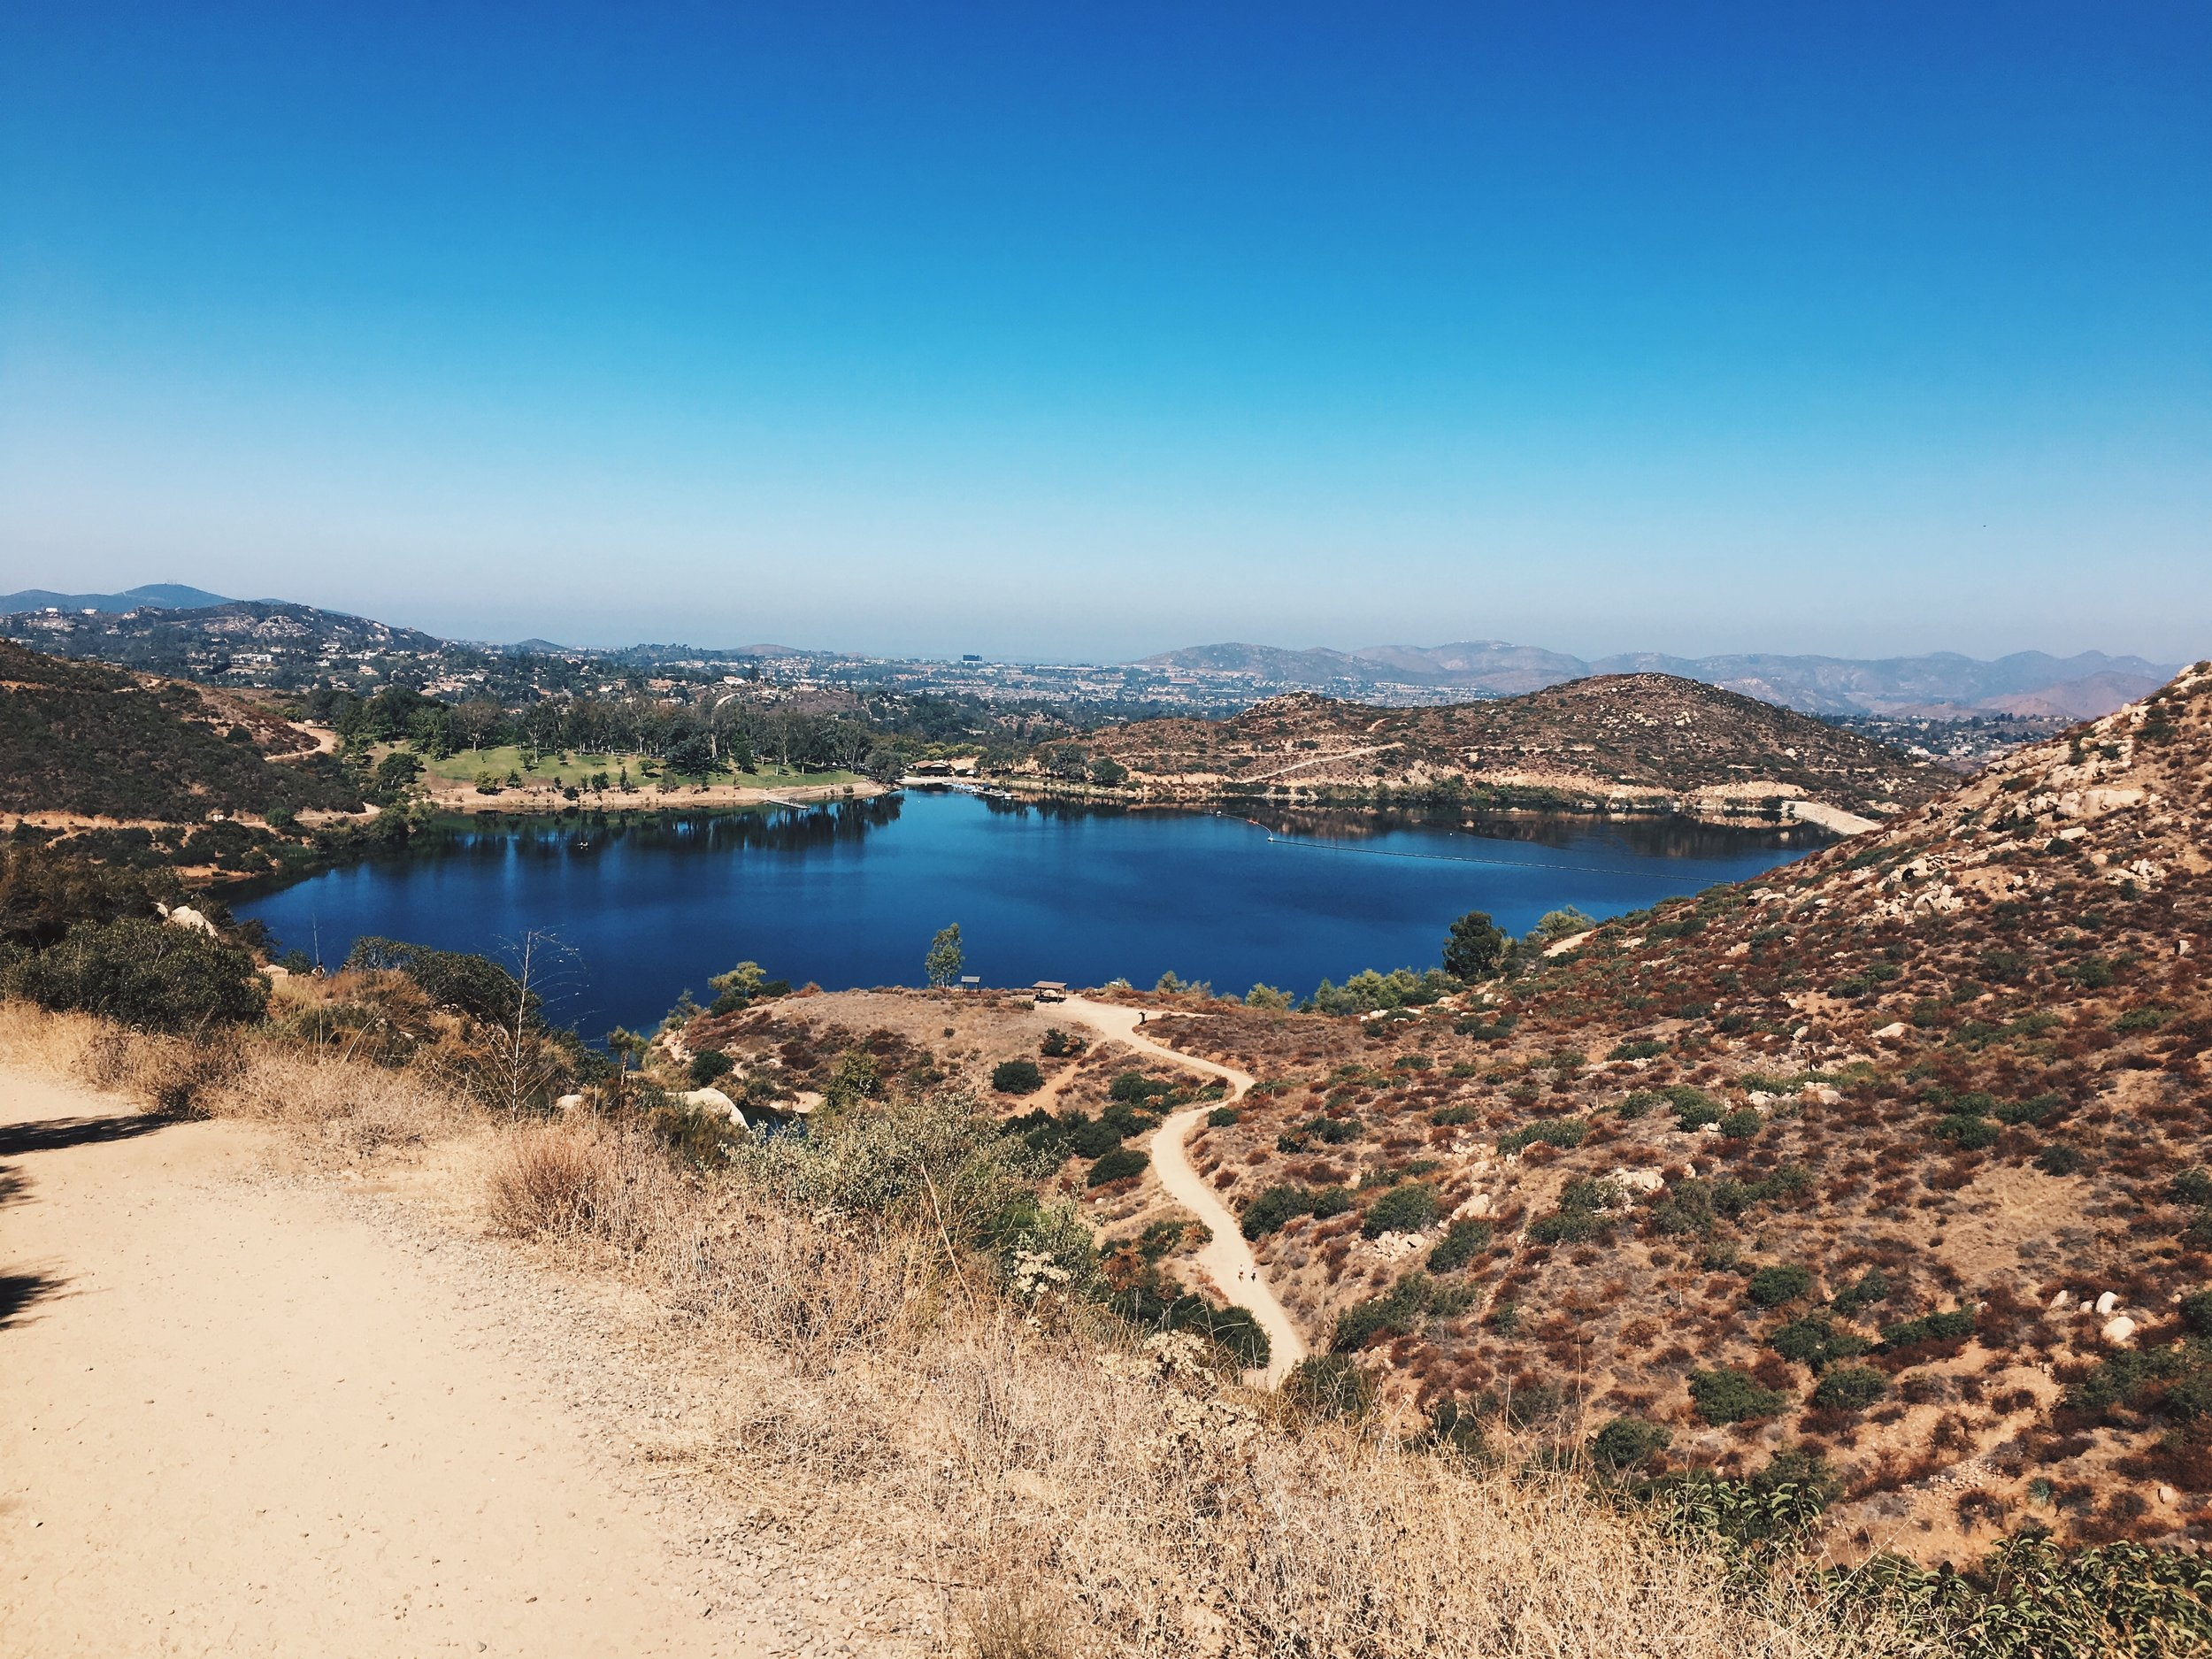 lake poway san diego california.jpg